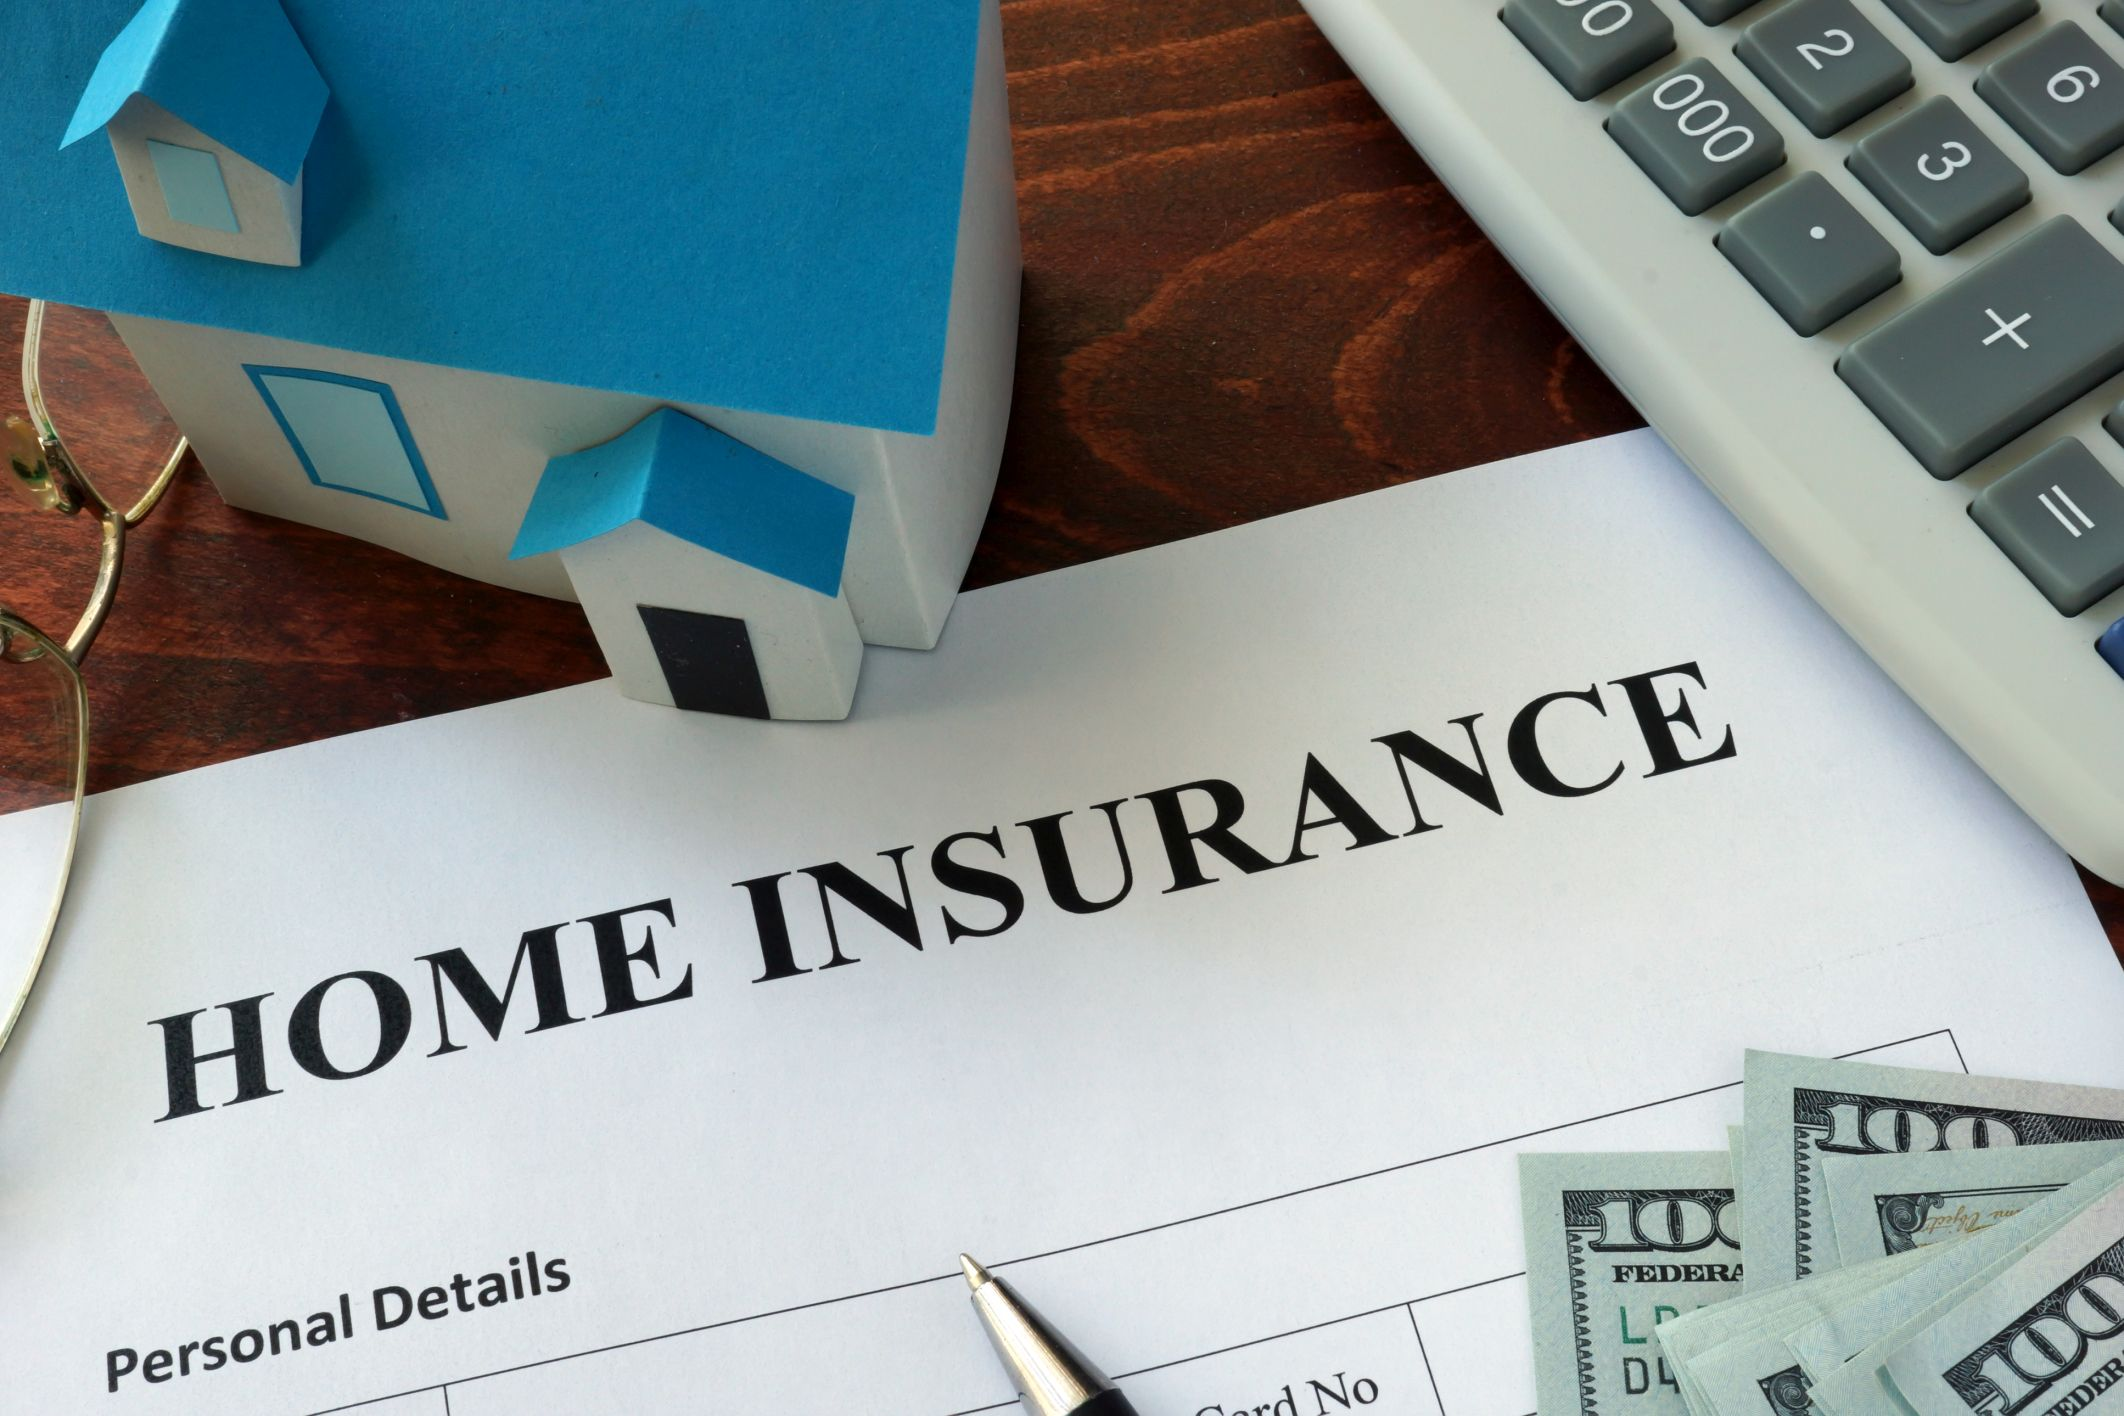 Auto And Homeowners Insurance Coverage Is Aarp Looking Out For You